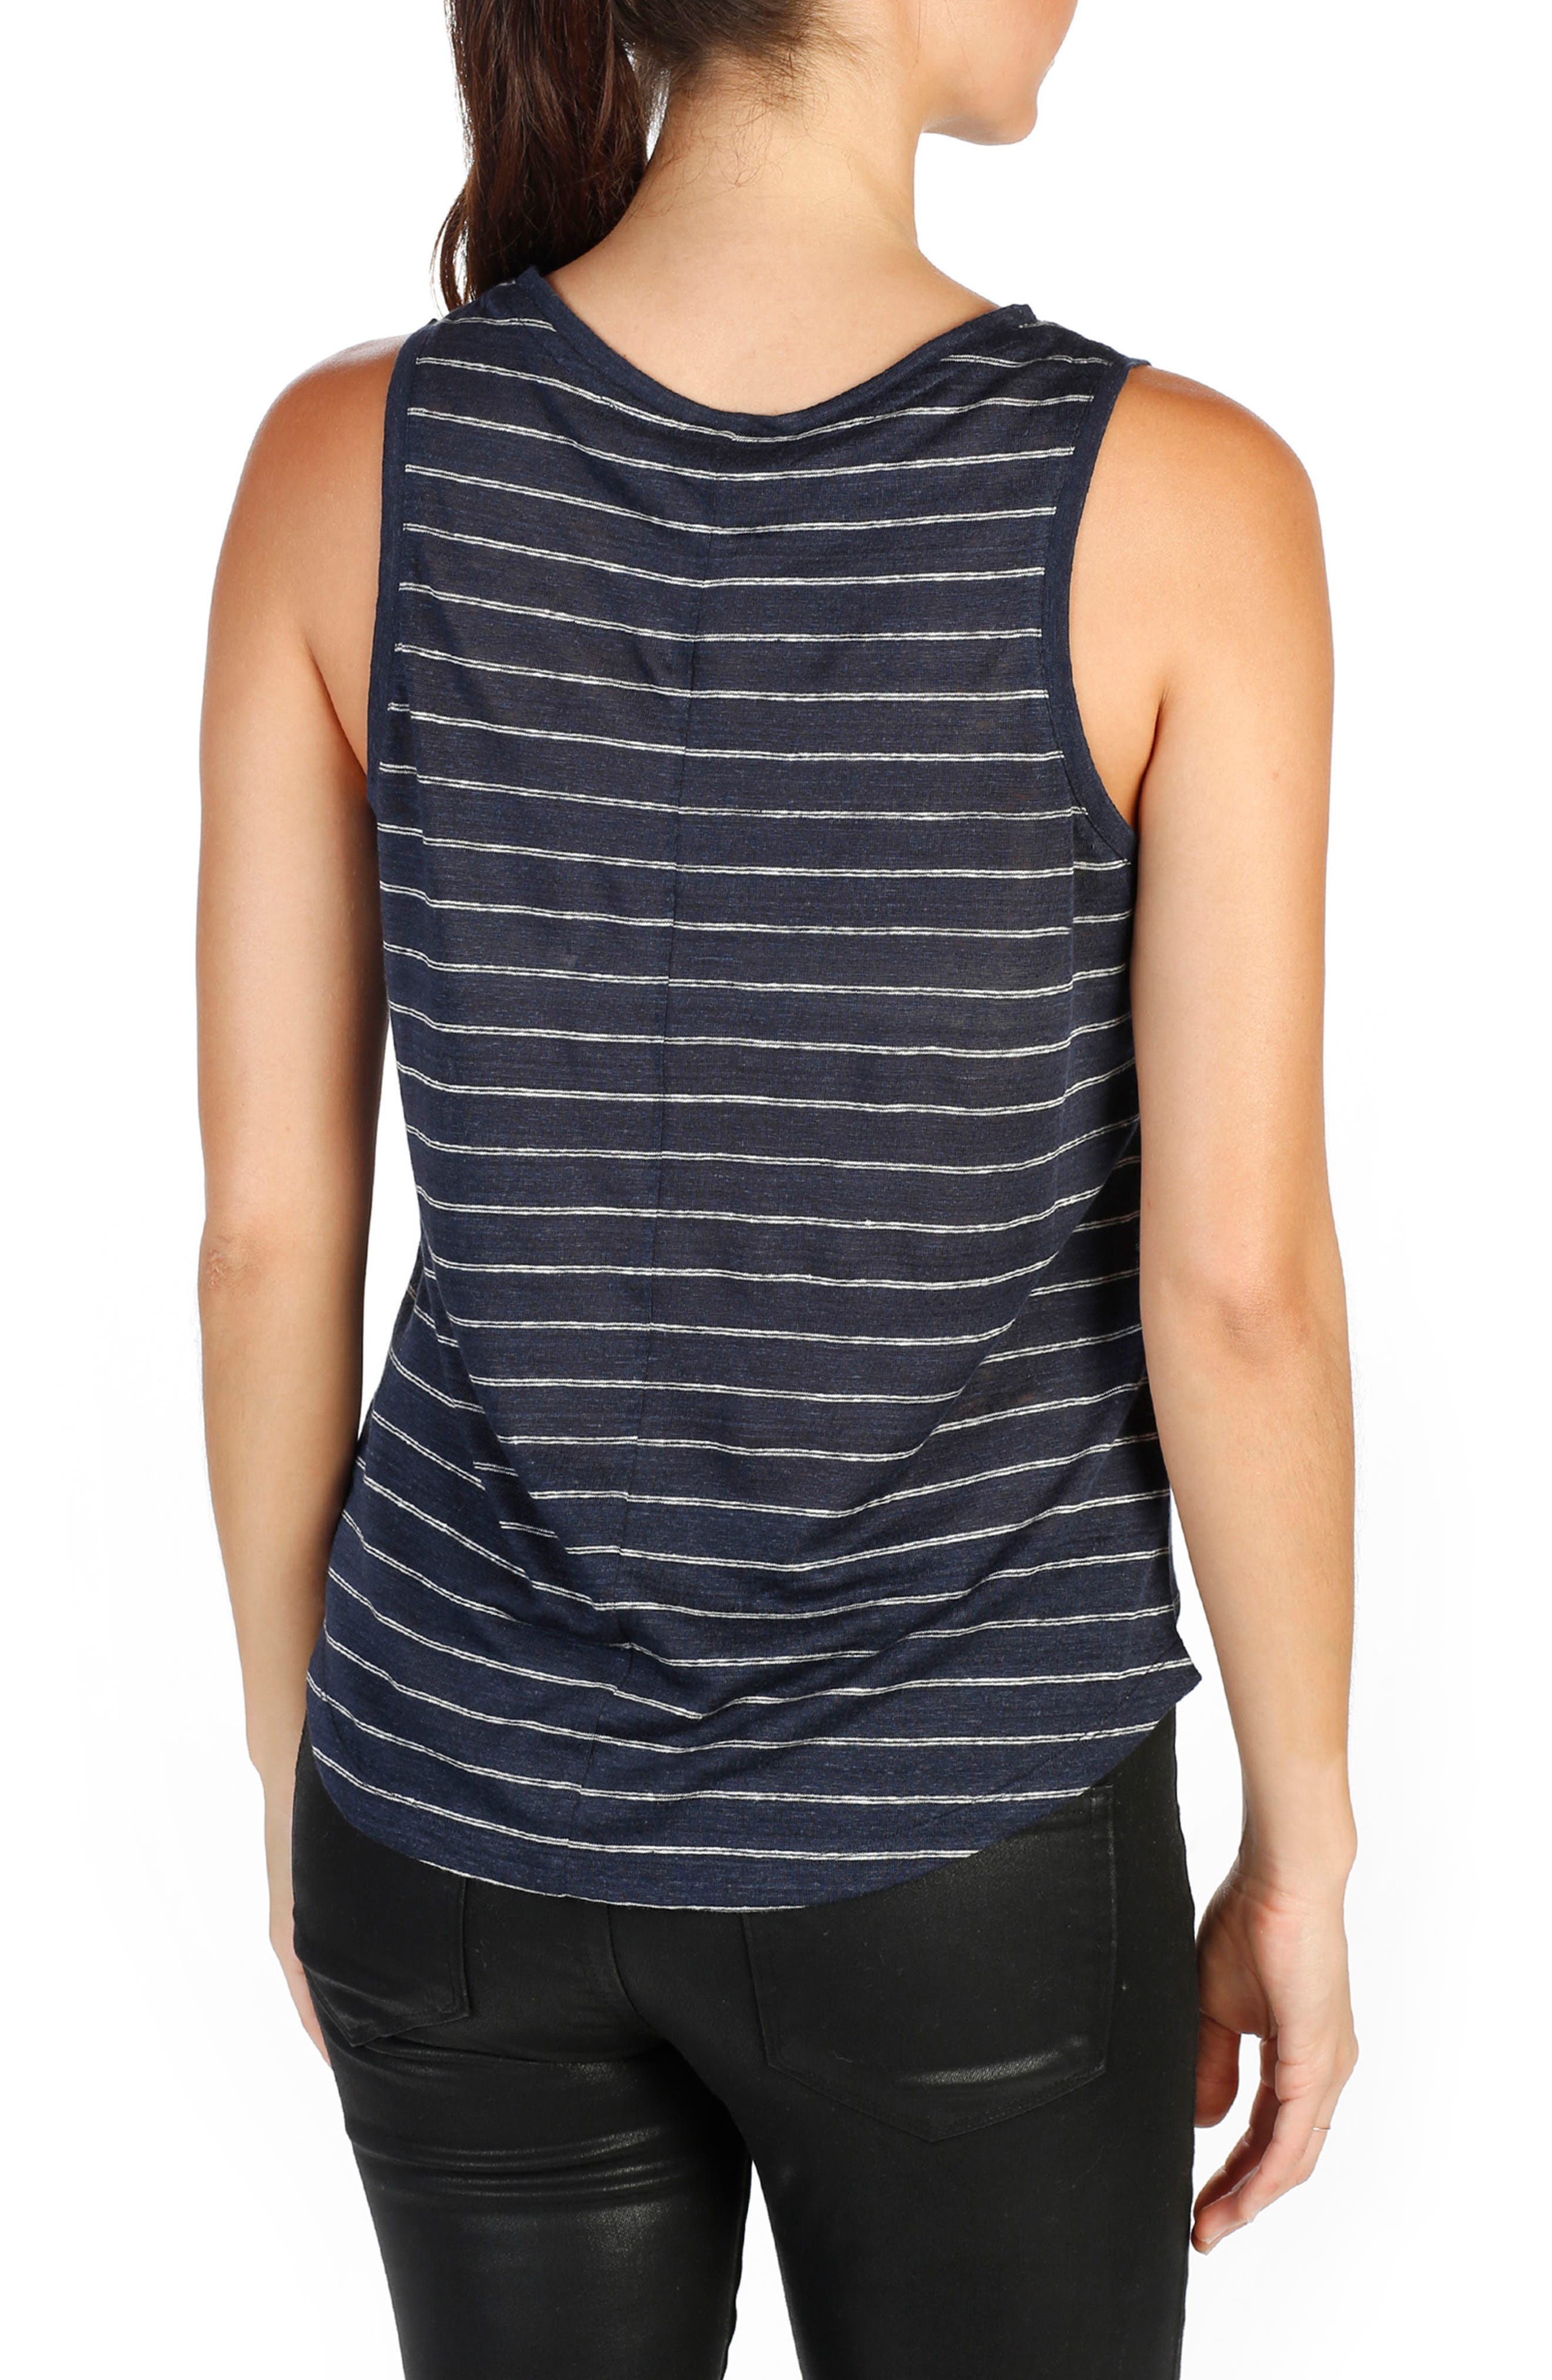 Analia Linen Tank,                             Alternate thumbnail 2, color,                             Dark Ink Blue/ White